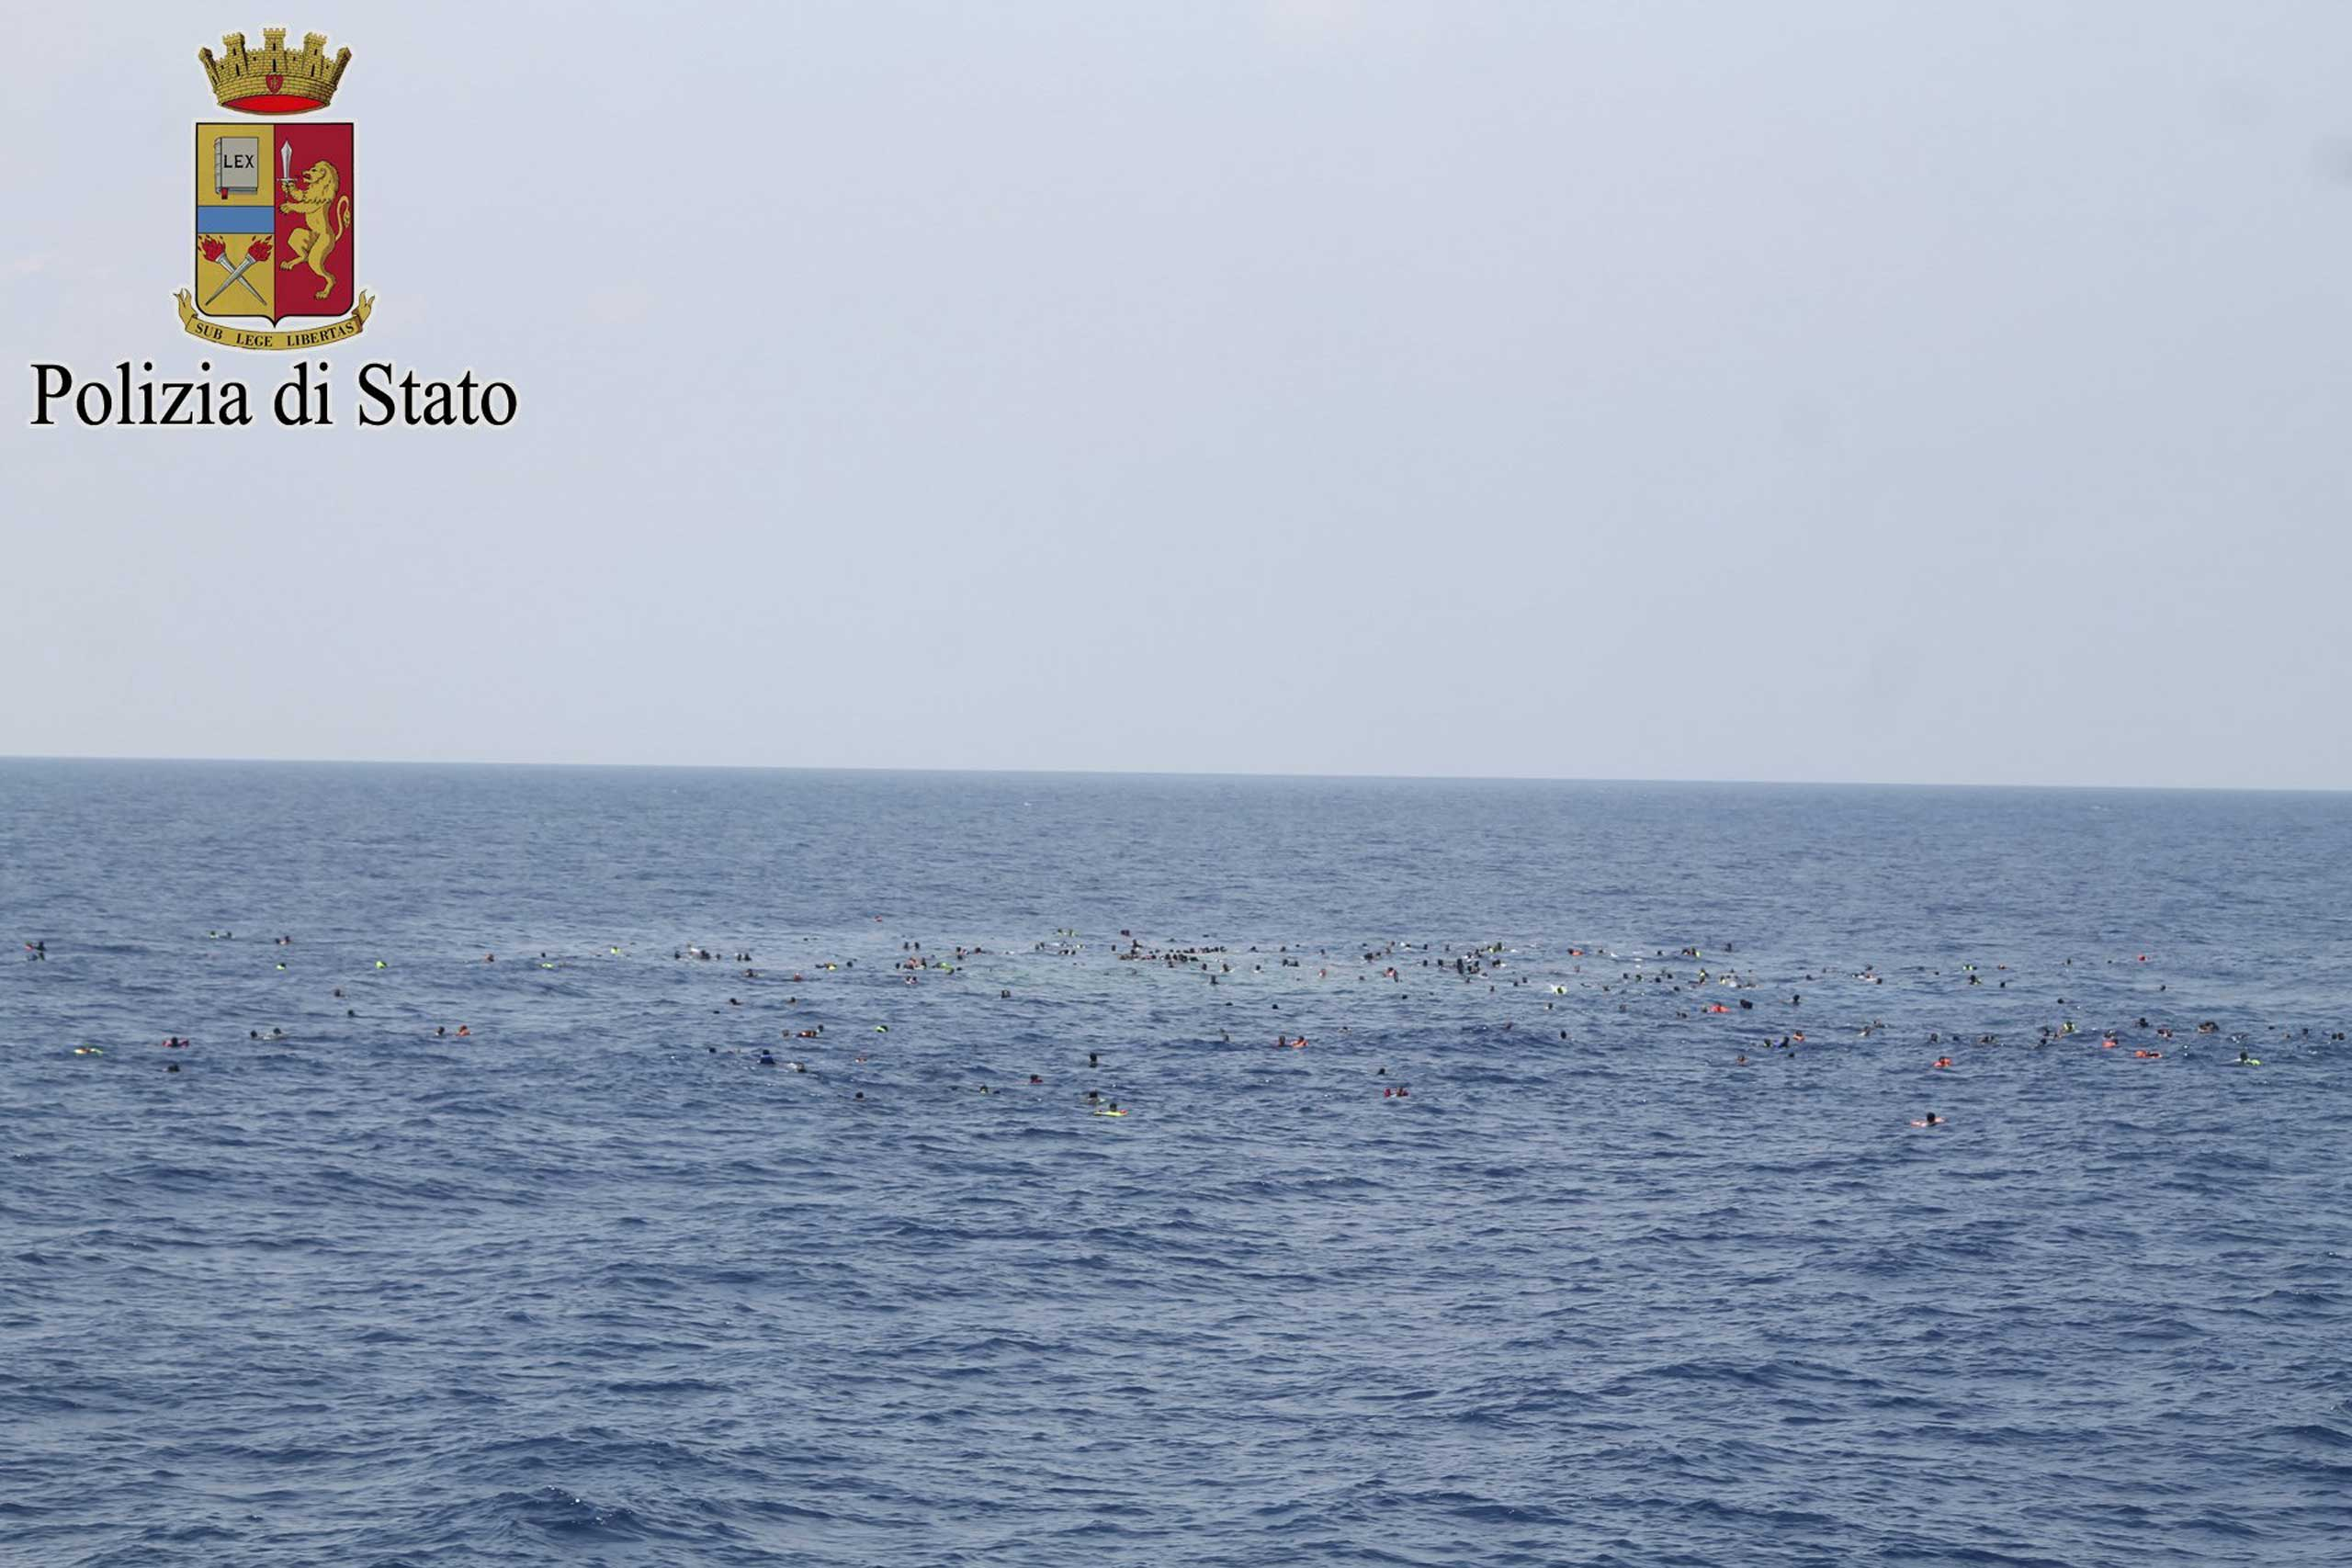 Surviving migrants are seen swimming in the area where their wooden boat capsized and sank off the coast of Libya on Aug. 5, 2015.